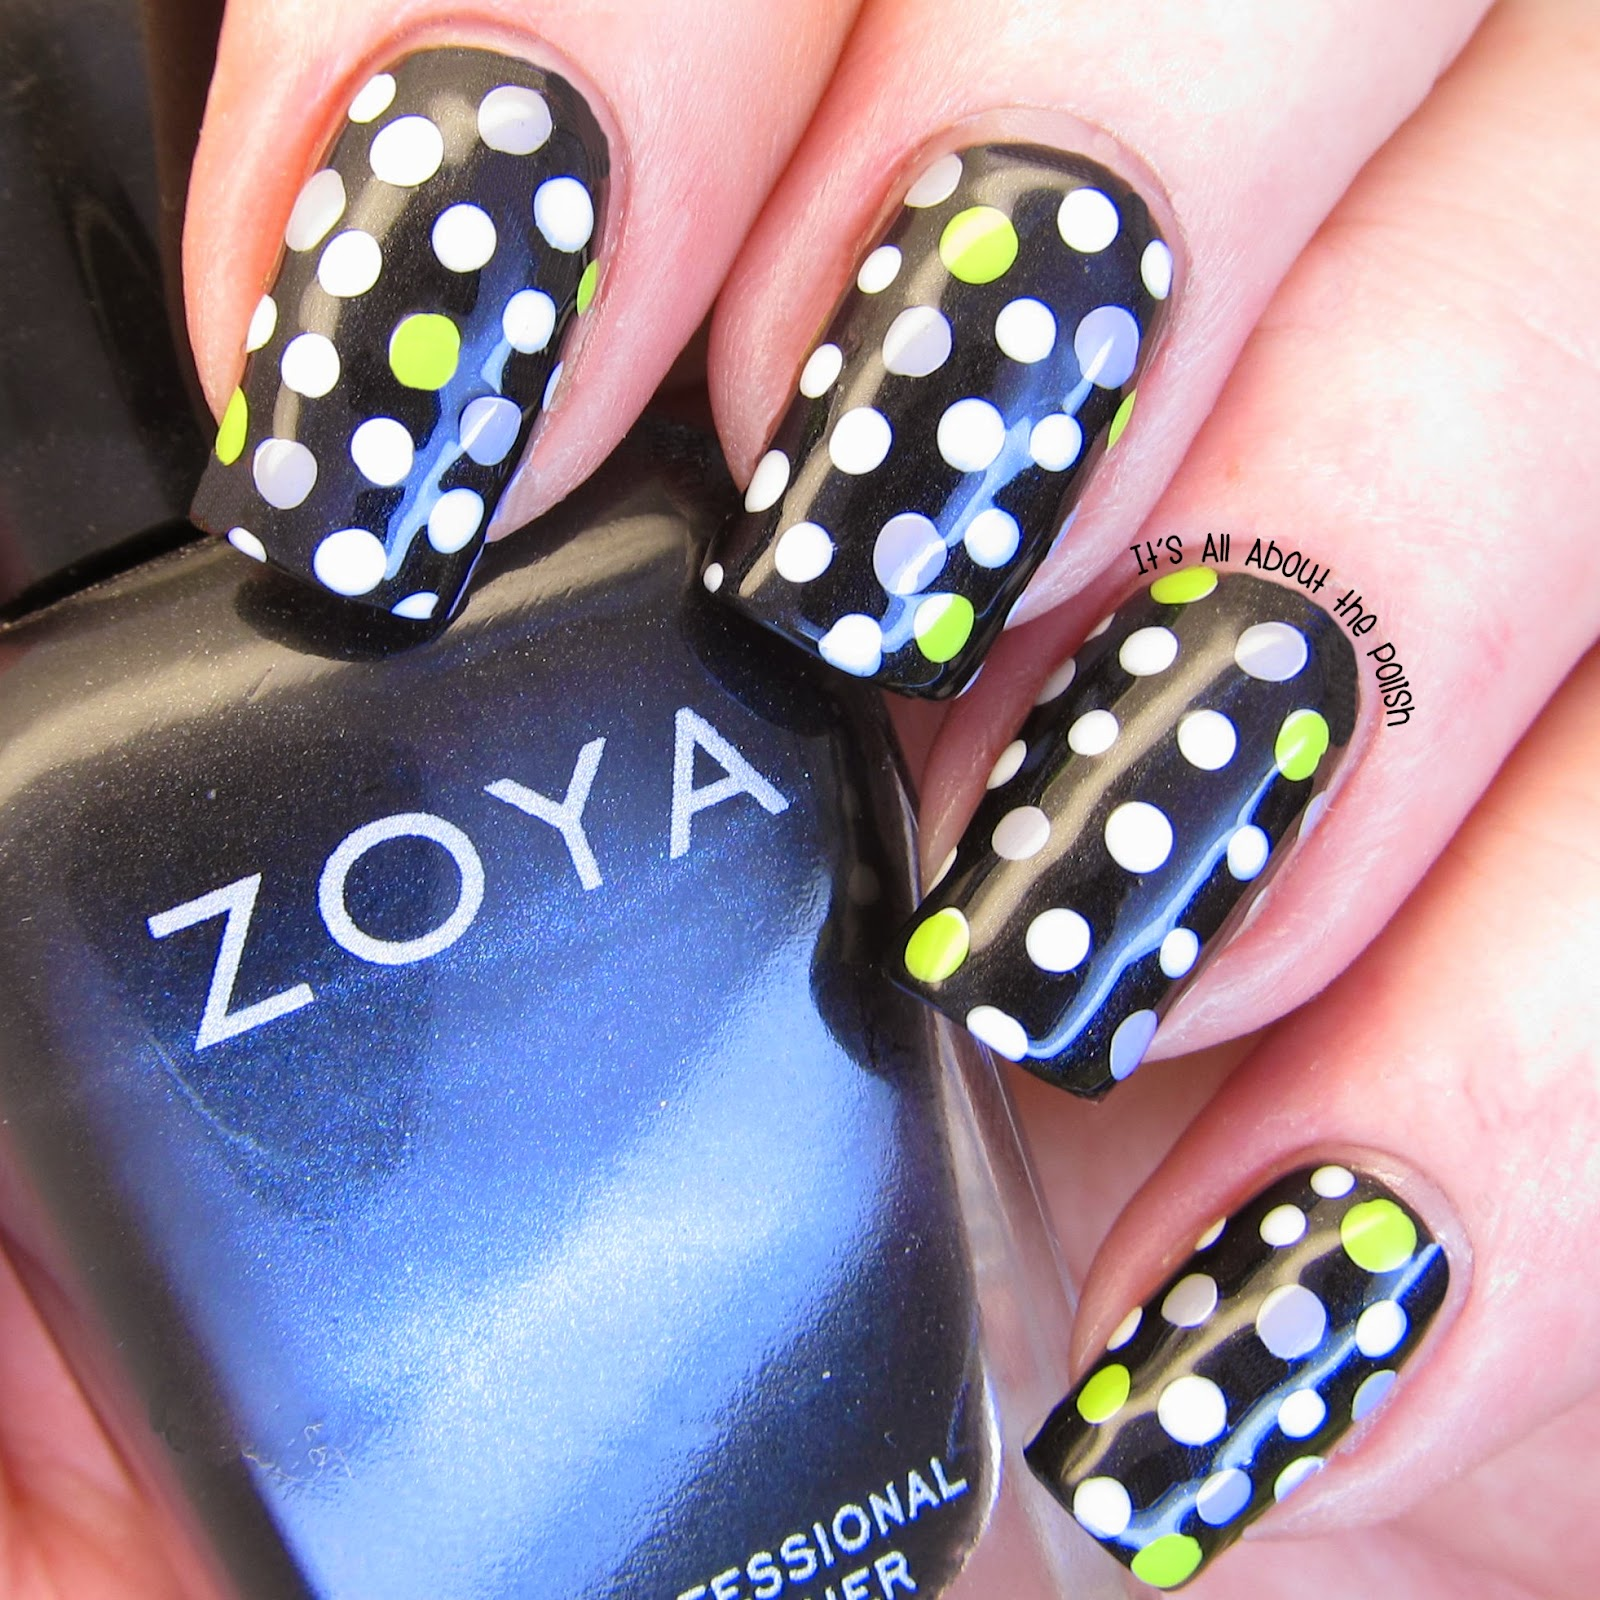 Its All About The Polish Fashion Dots Nail Design